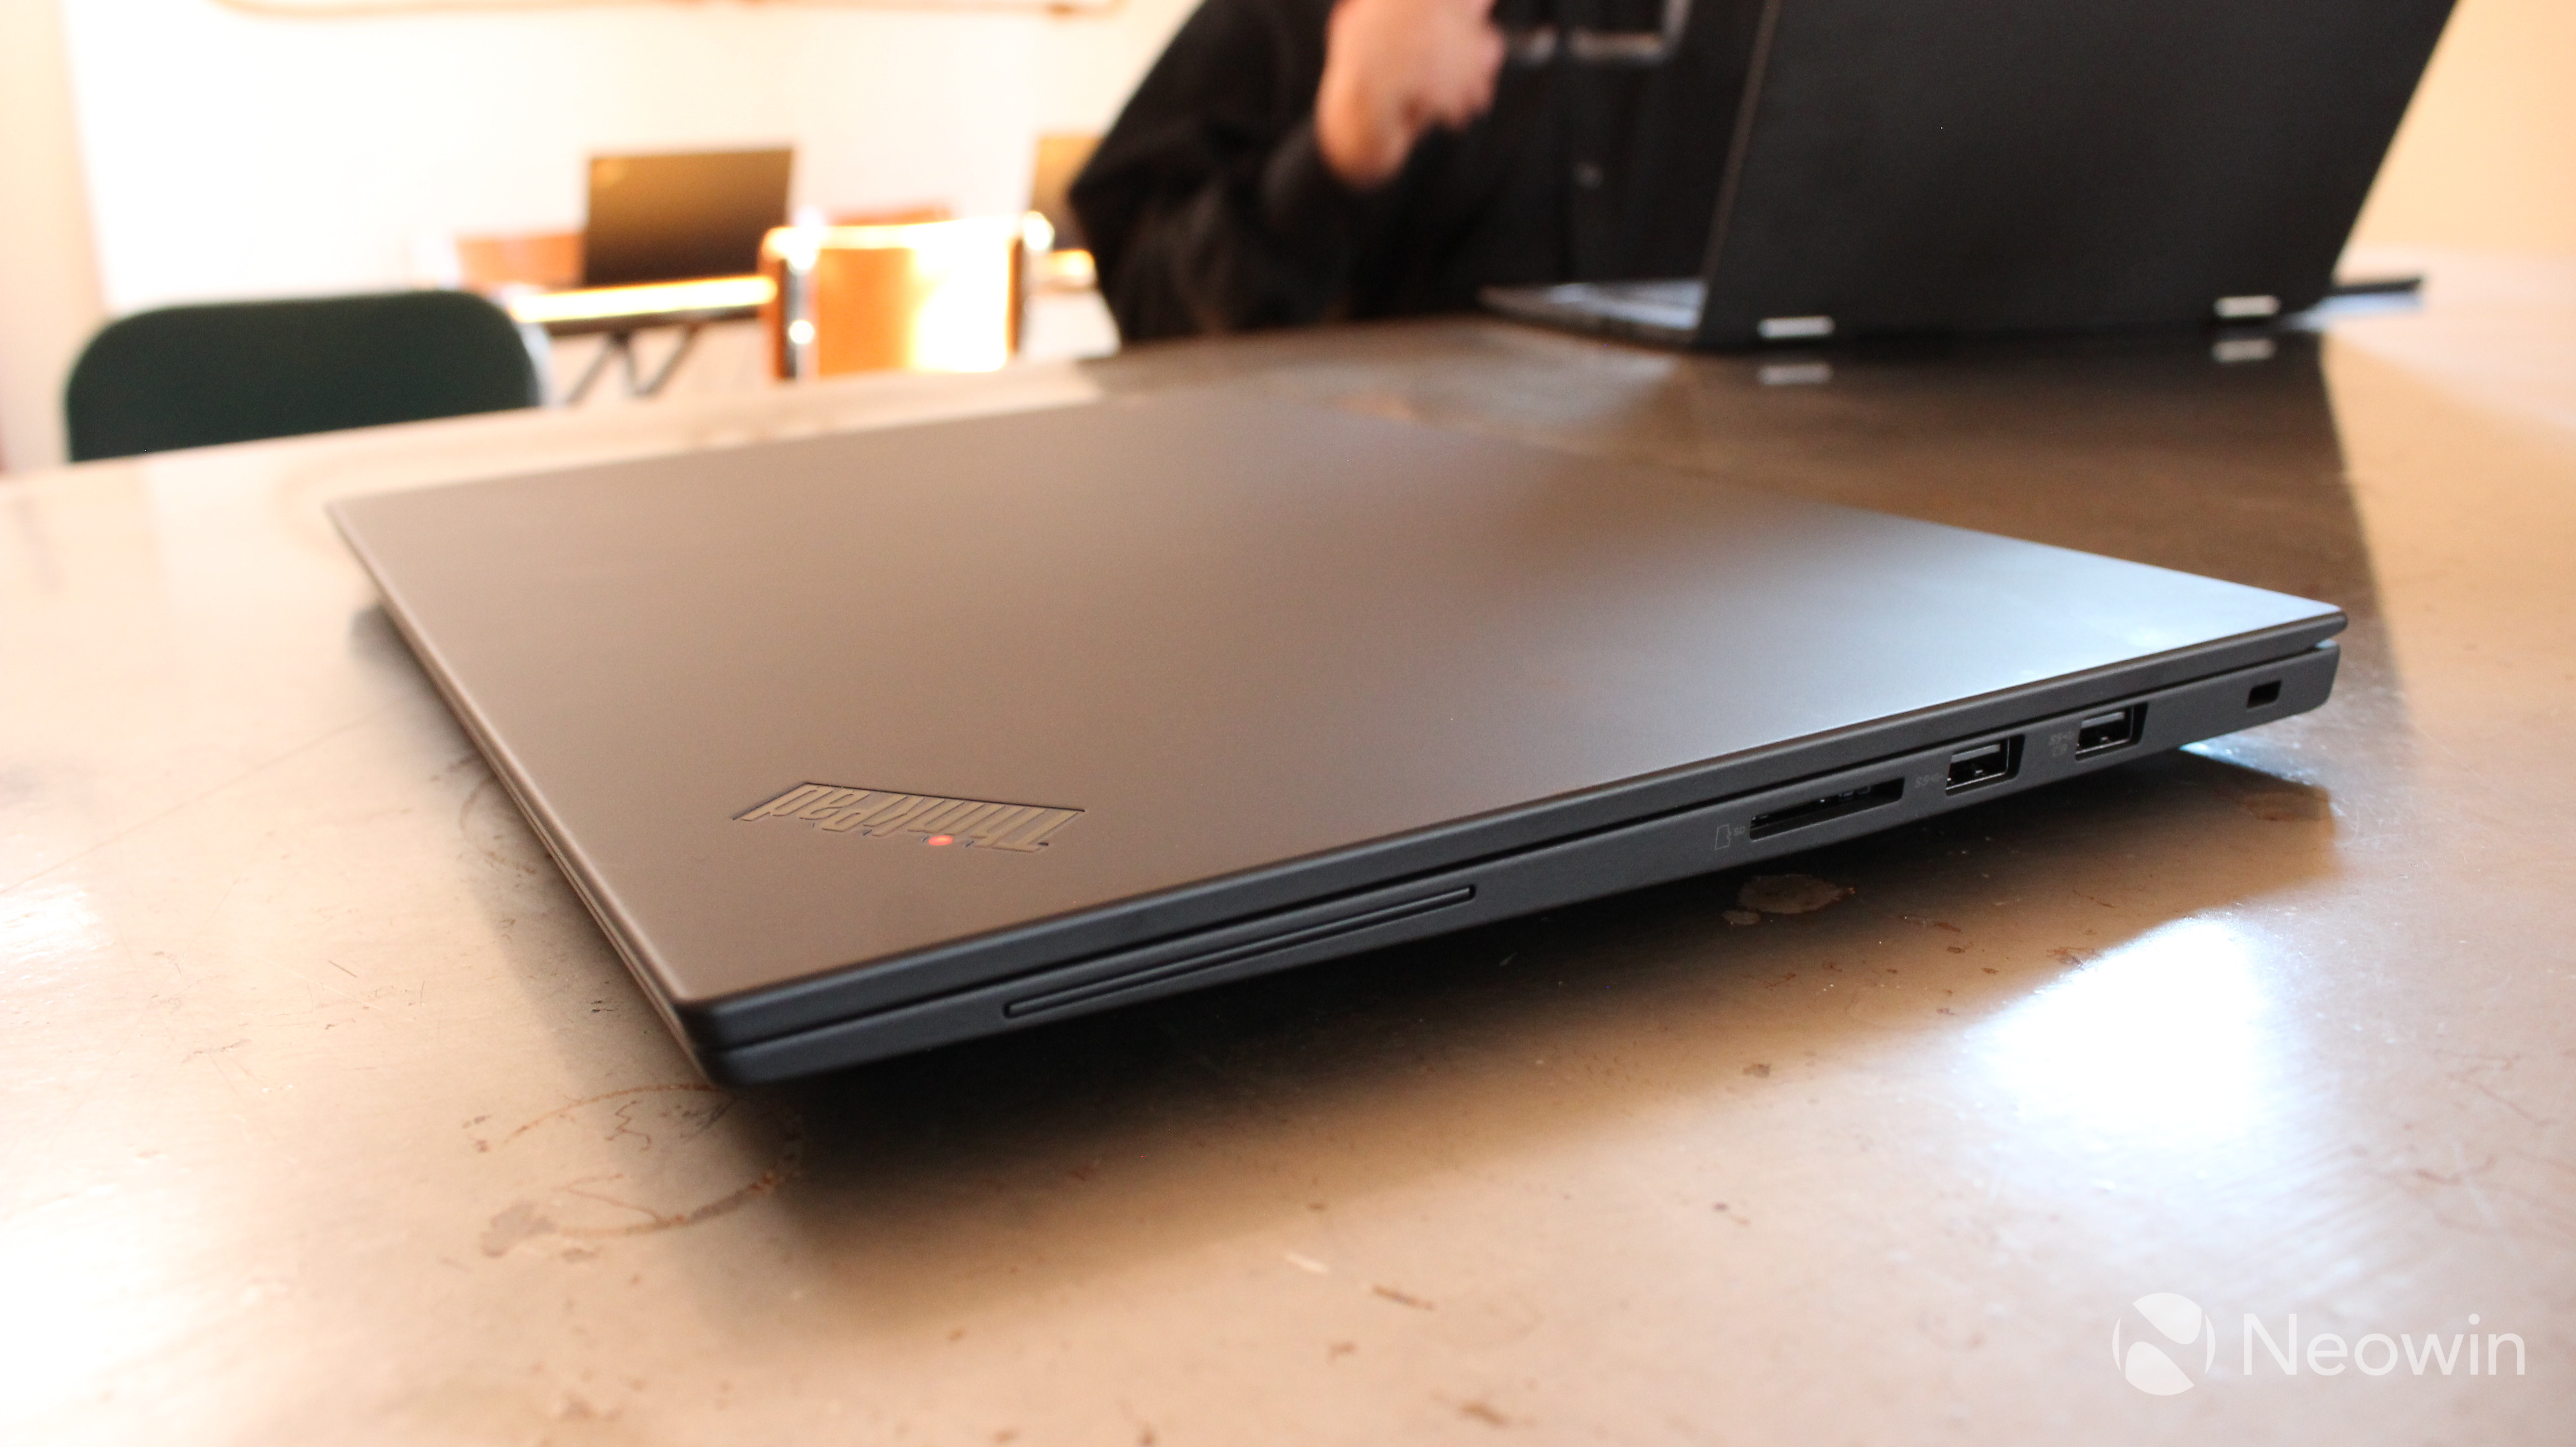 Lenovo ThinkPad X1 Extreme has H-series processors and a dedicated